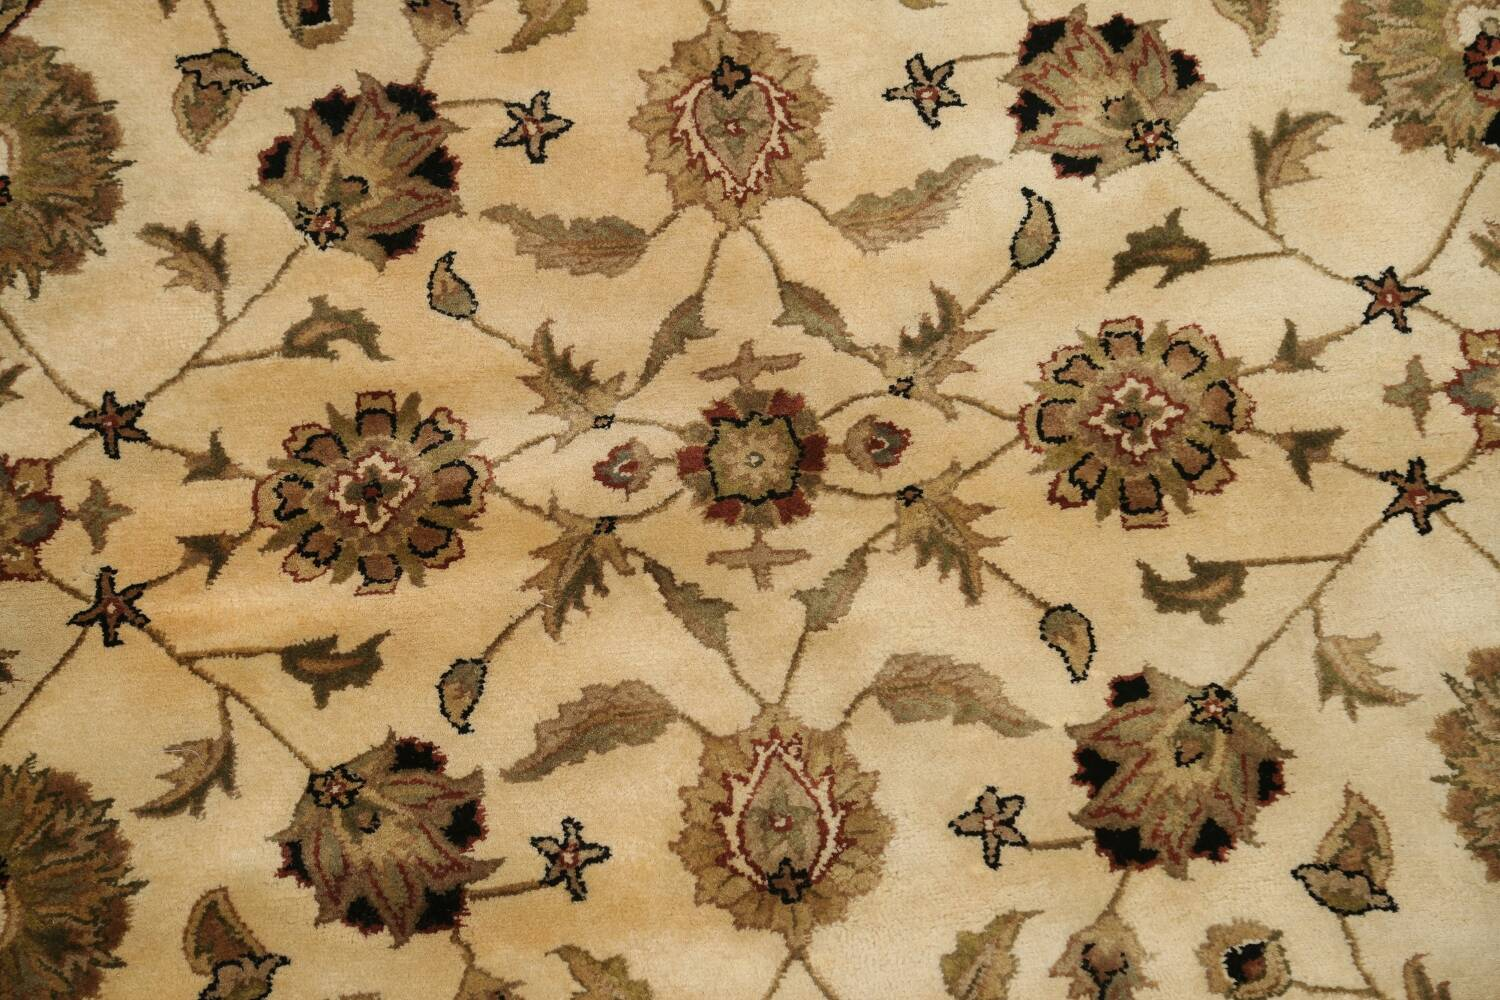 Floral Agra Oriental Area Rug 6x6 Round image 4